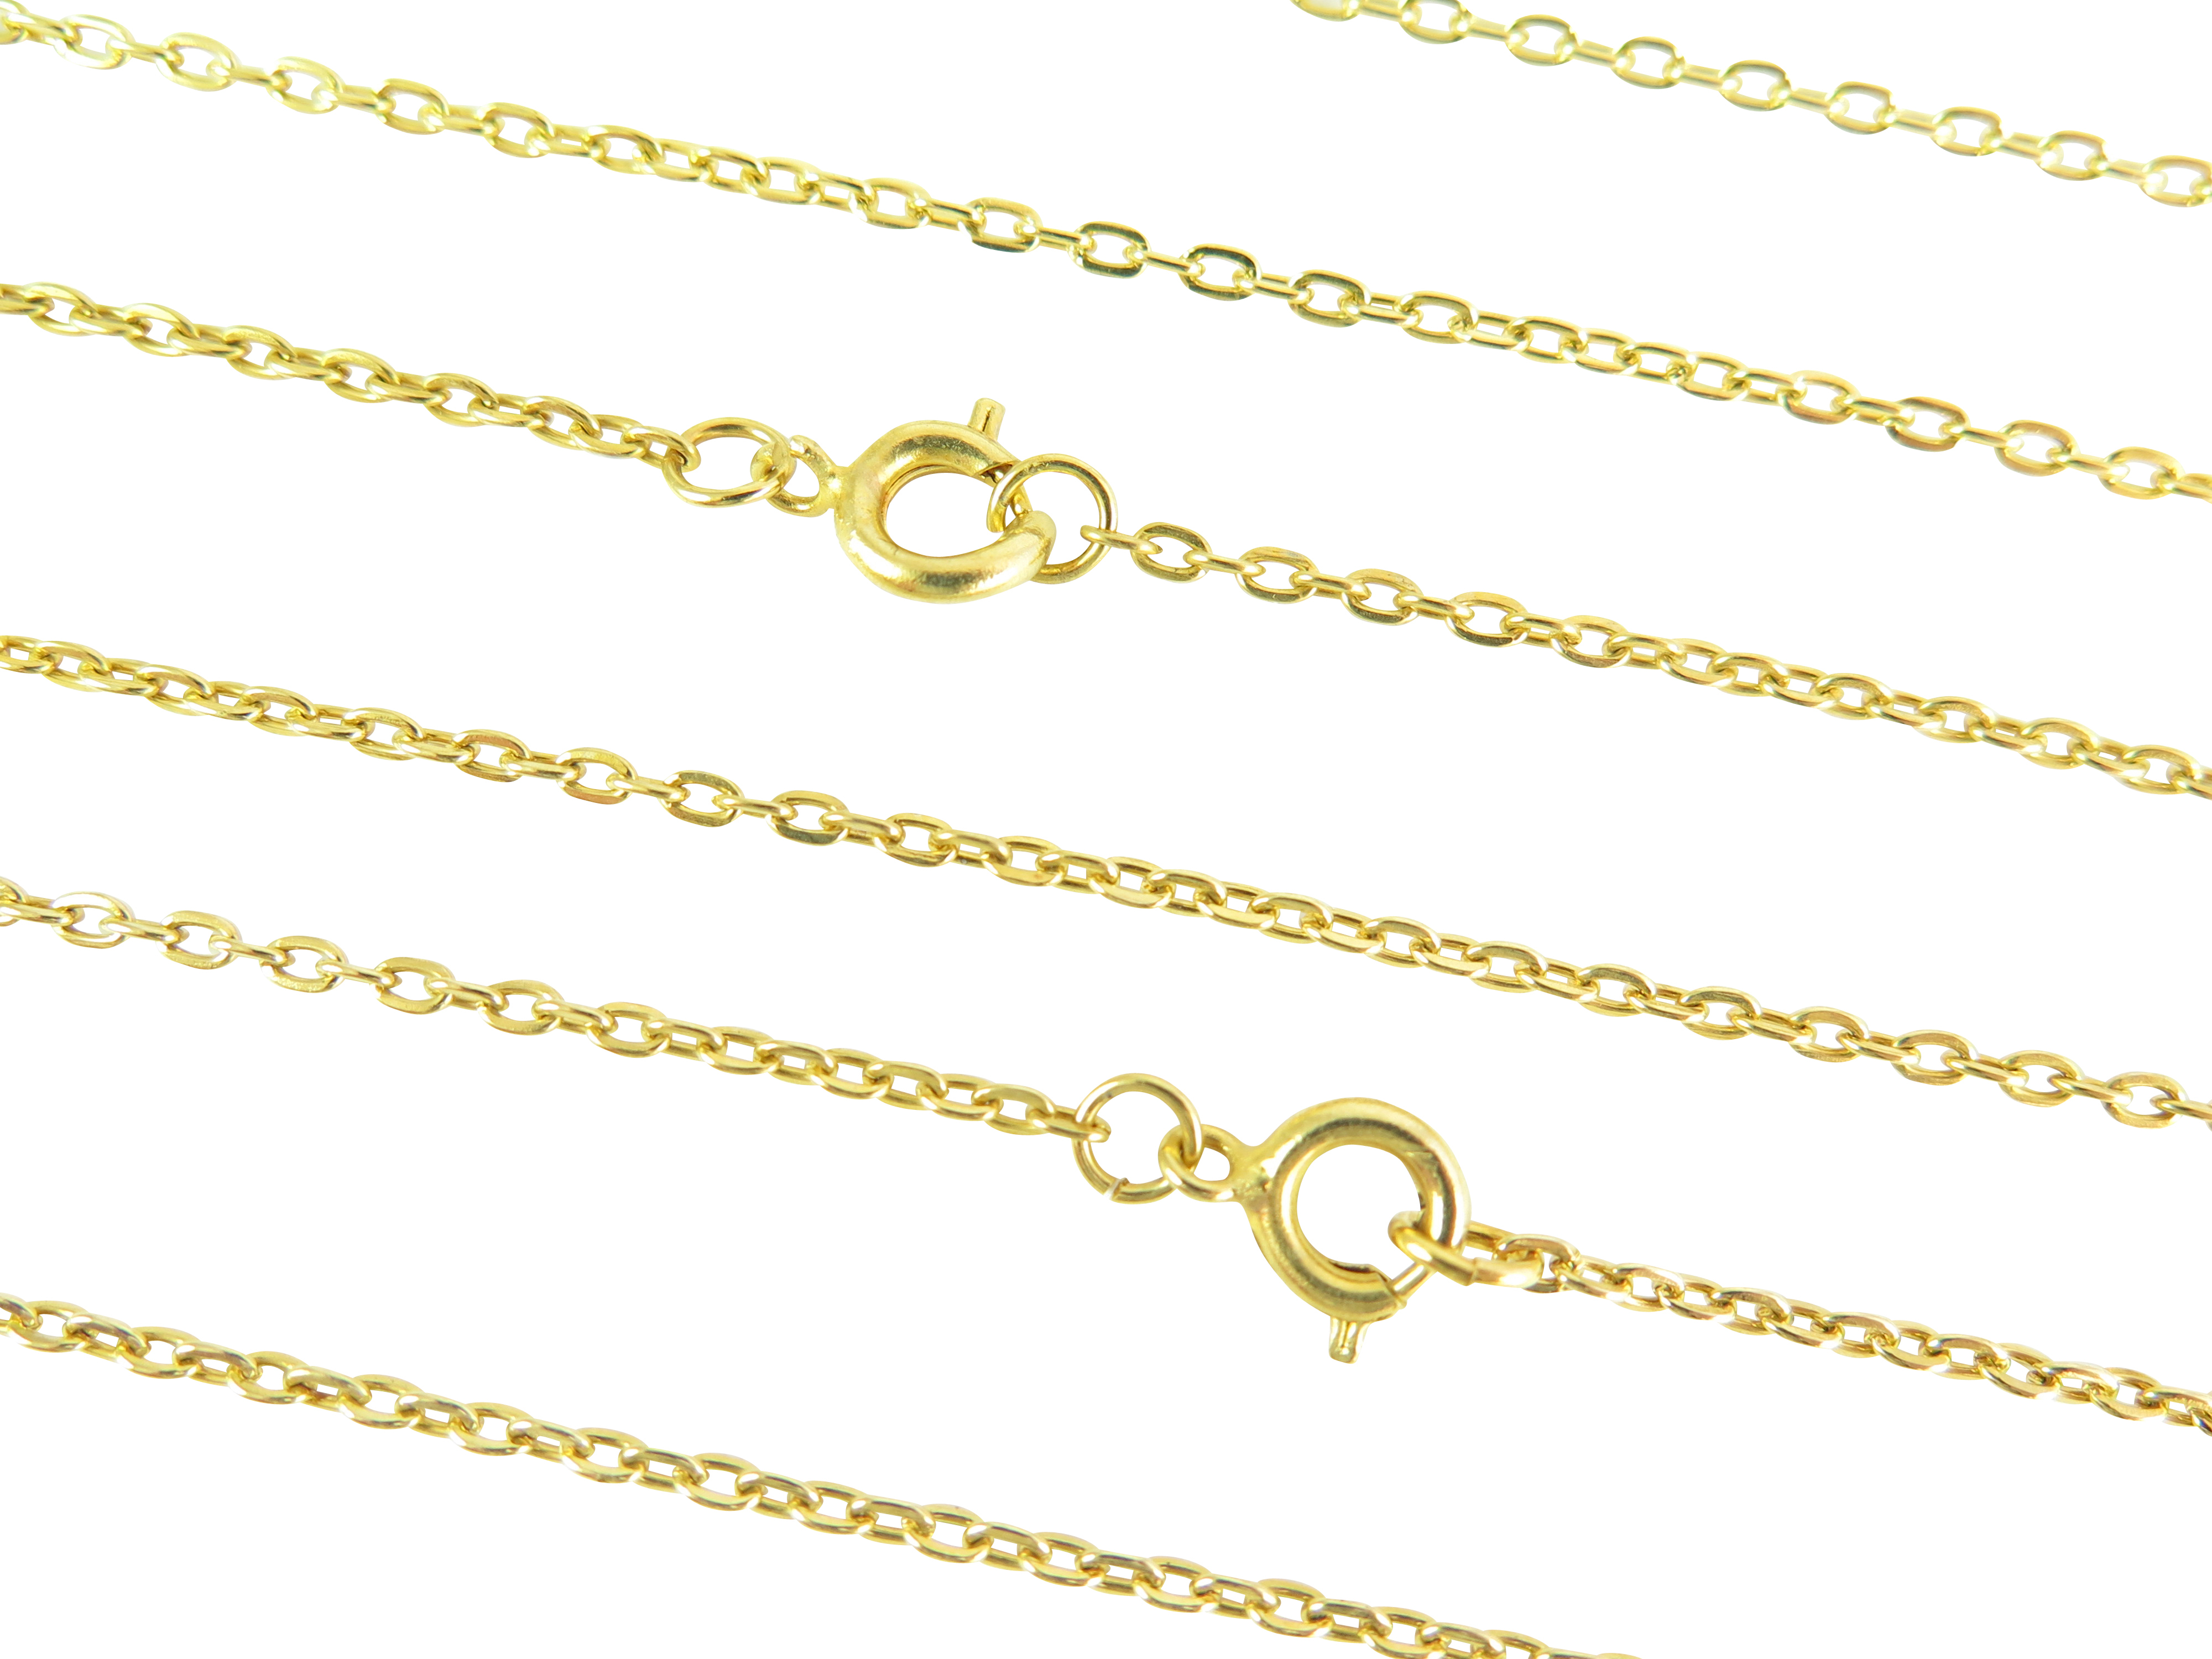 Vintage Gold Plated Cable Chain Necklace – 24 Inches Regarding 2020 Cable Chain Necklaces (View 18 of 25)